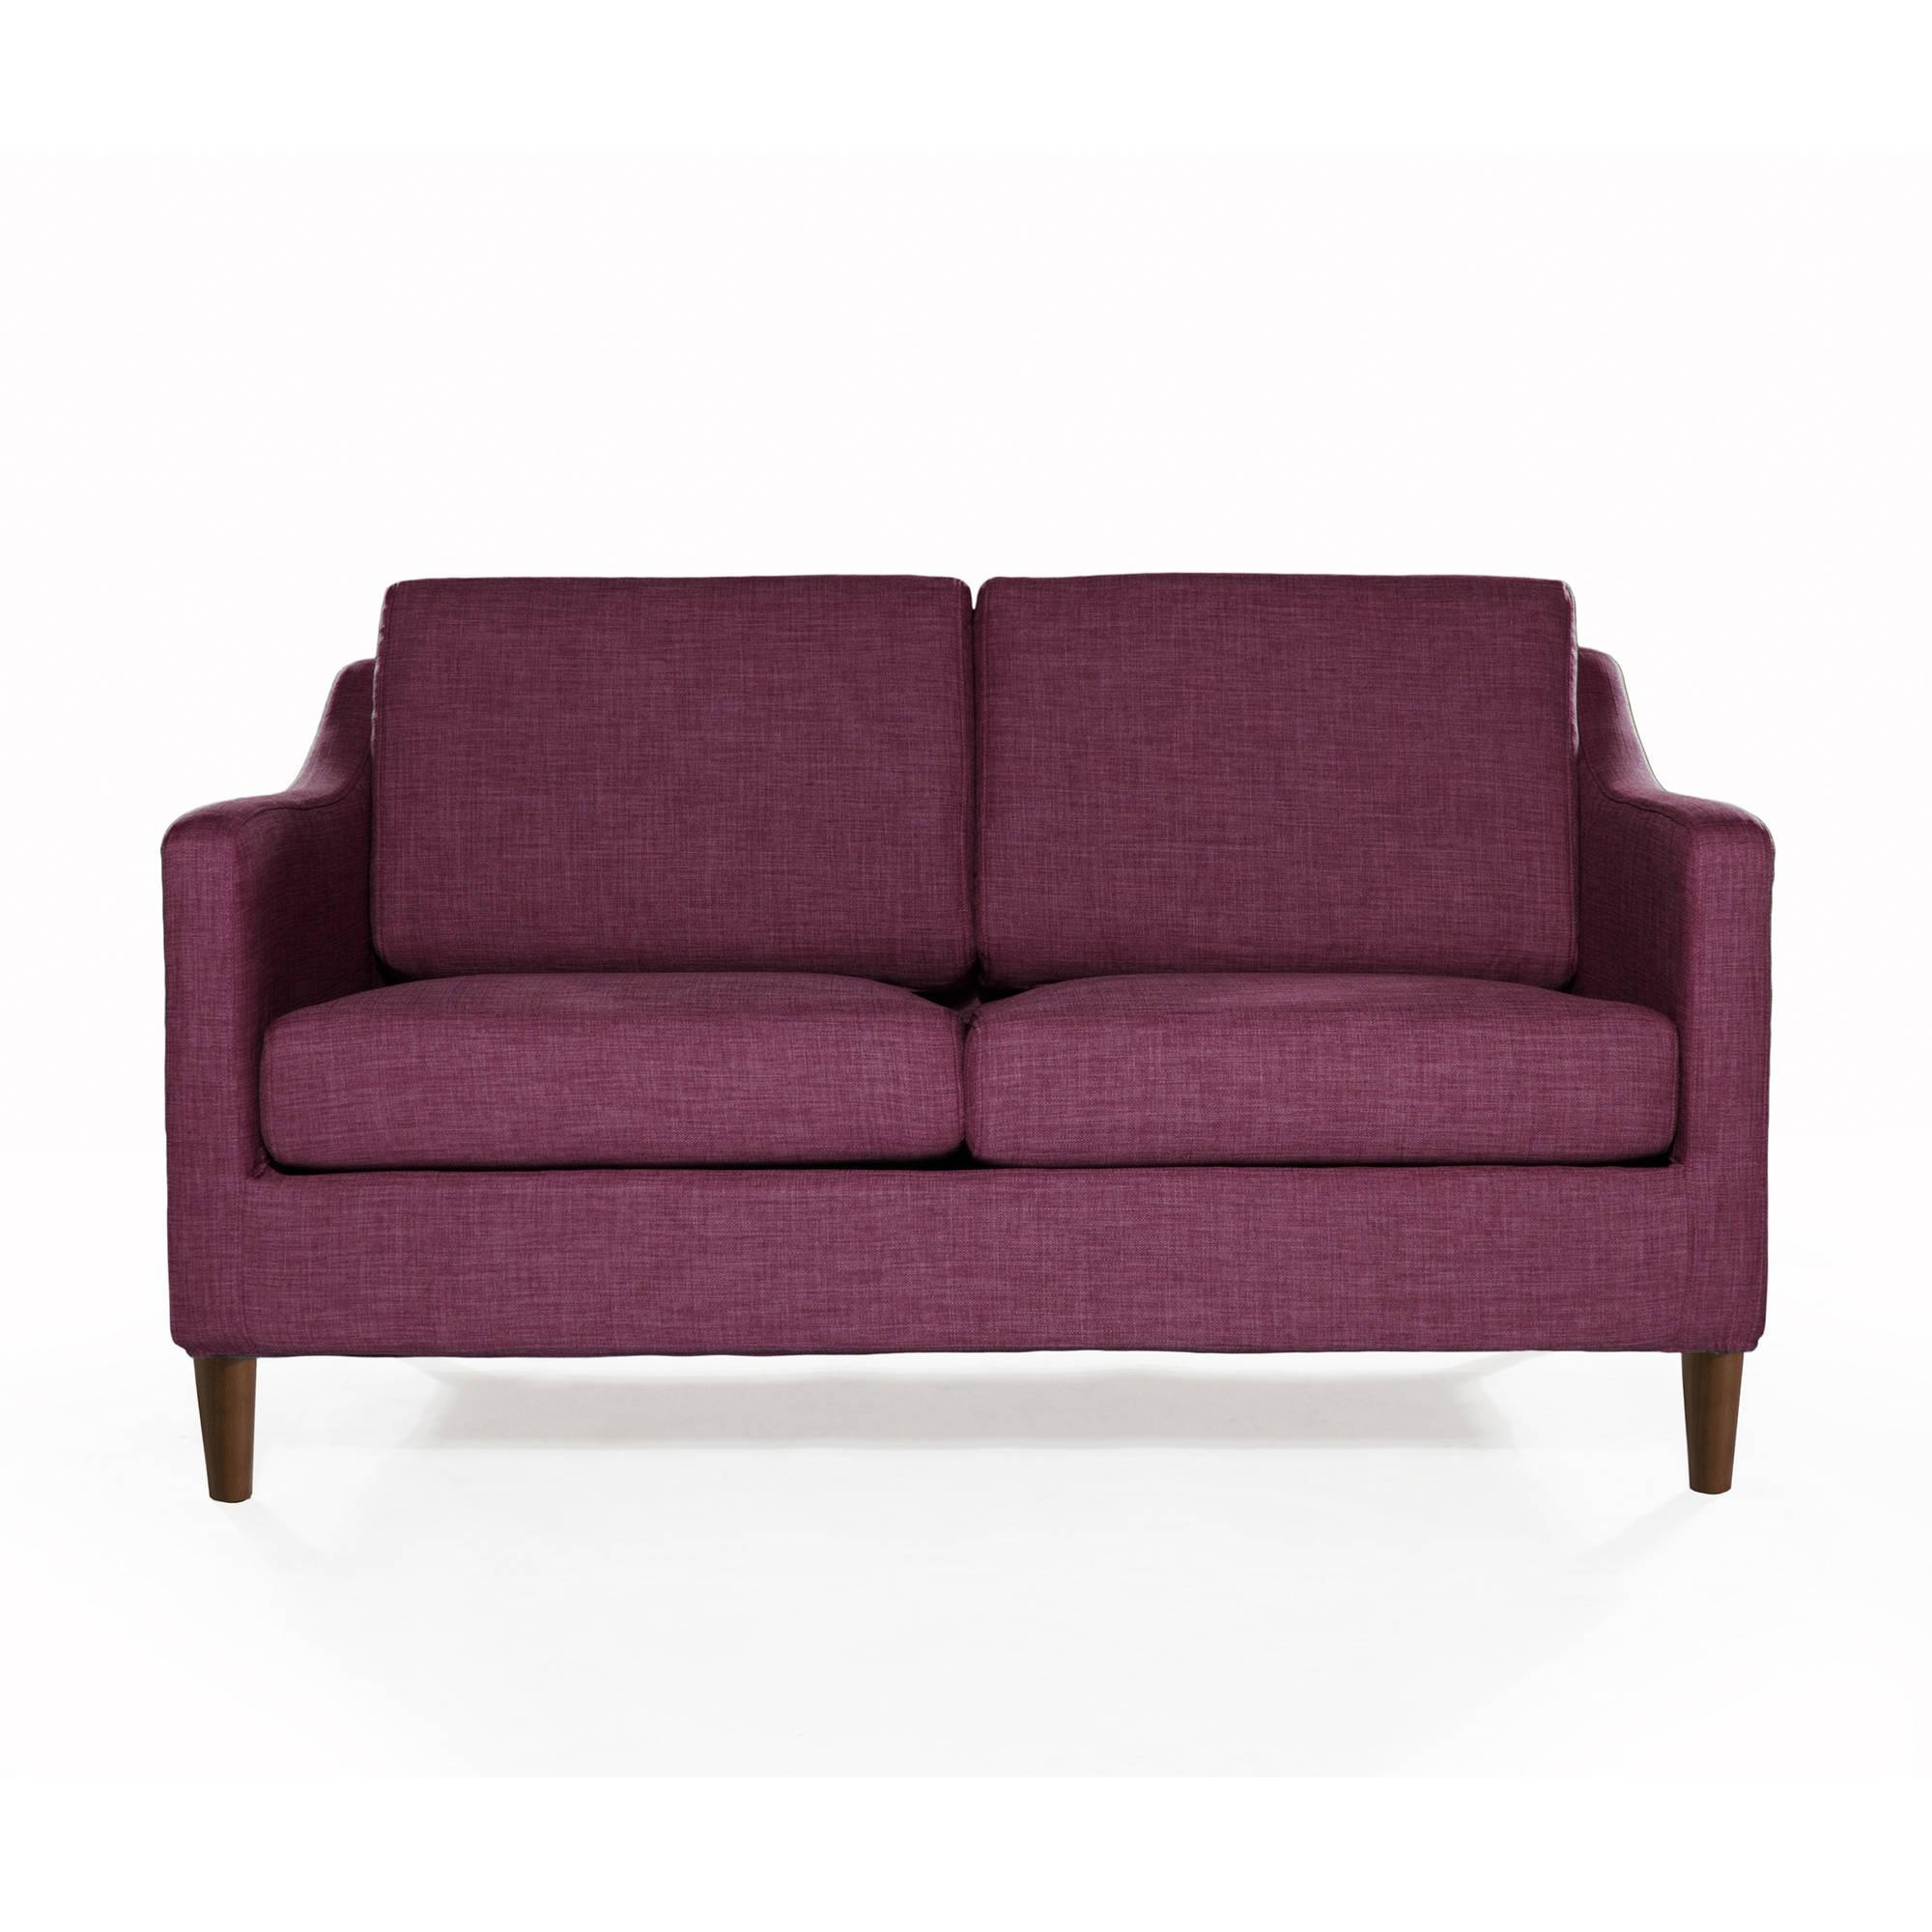 Sofas : Amazing Dining Chair Slipcovers Leather Sofa Jennifer With Regard To Leather Storage Sofas (View 10 of 21)